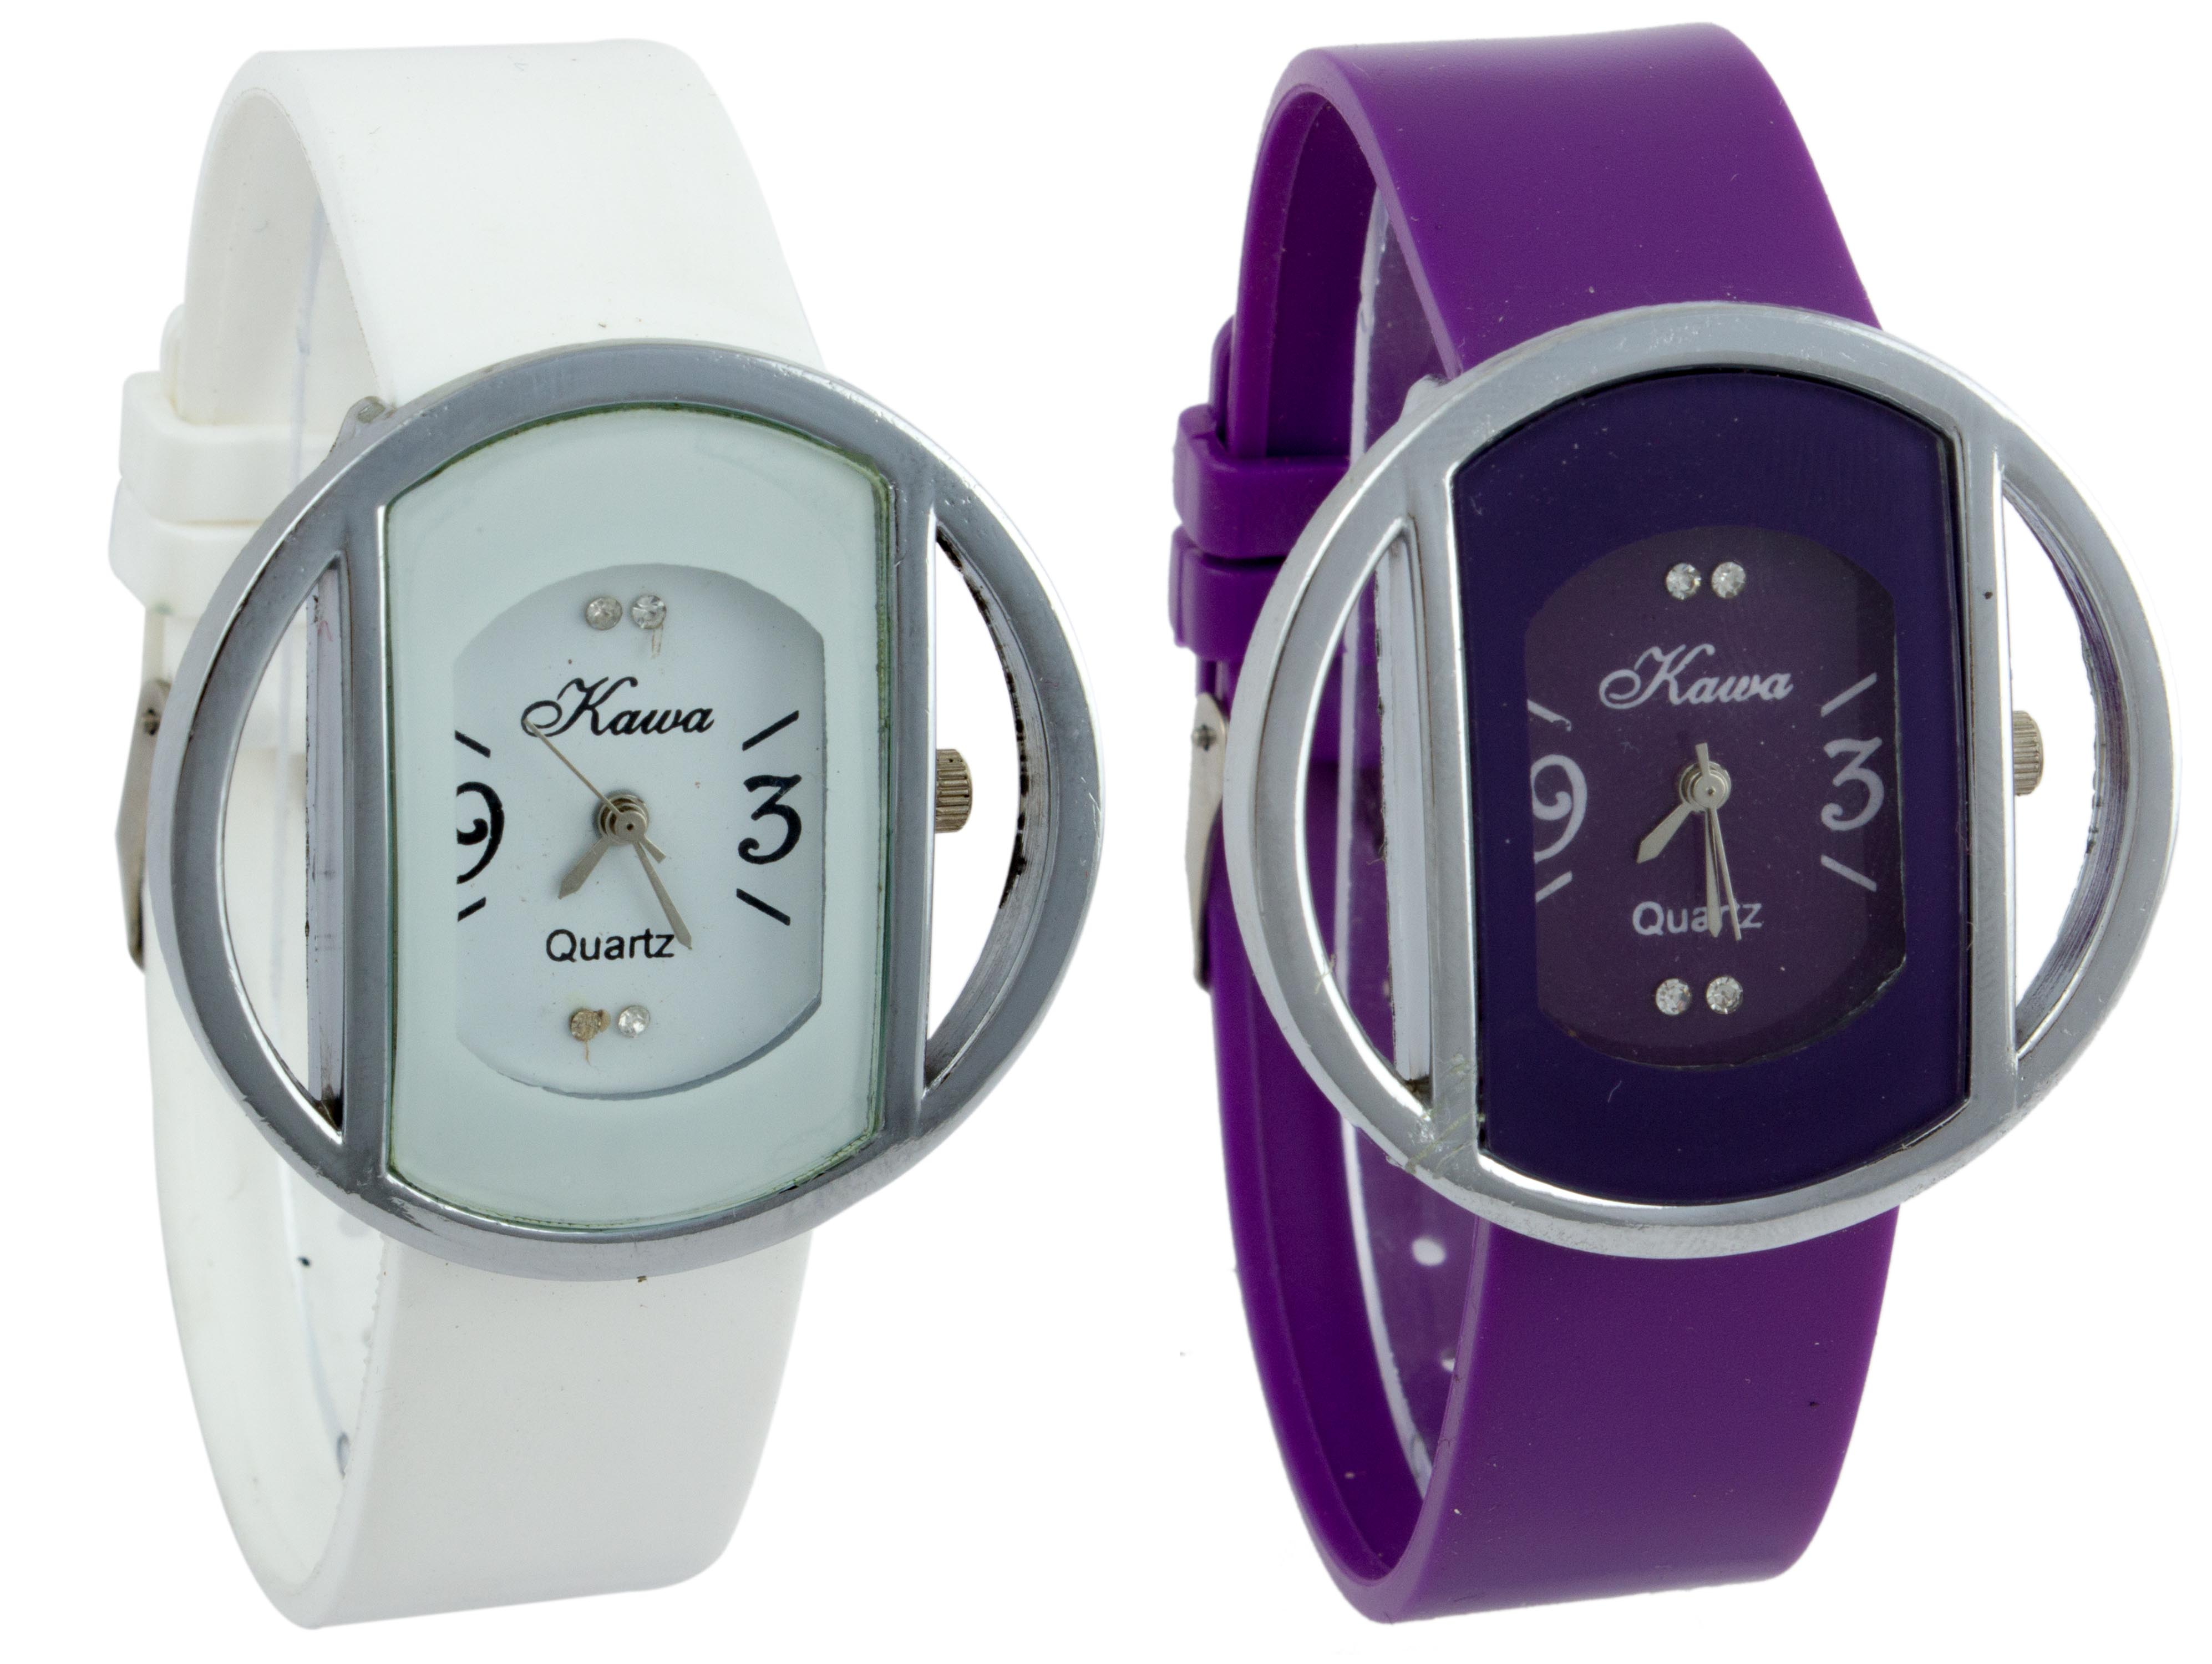 Glory Combo of Two Kawa Circular Silver Case Watches by 7Star